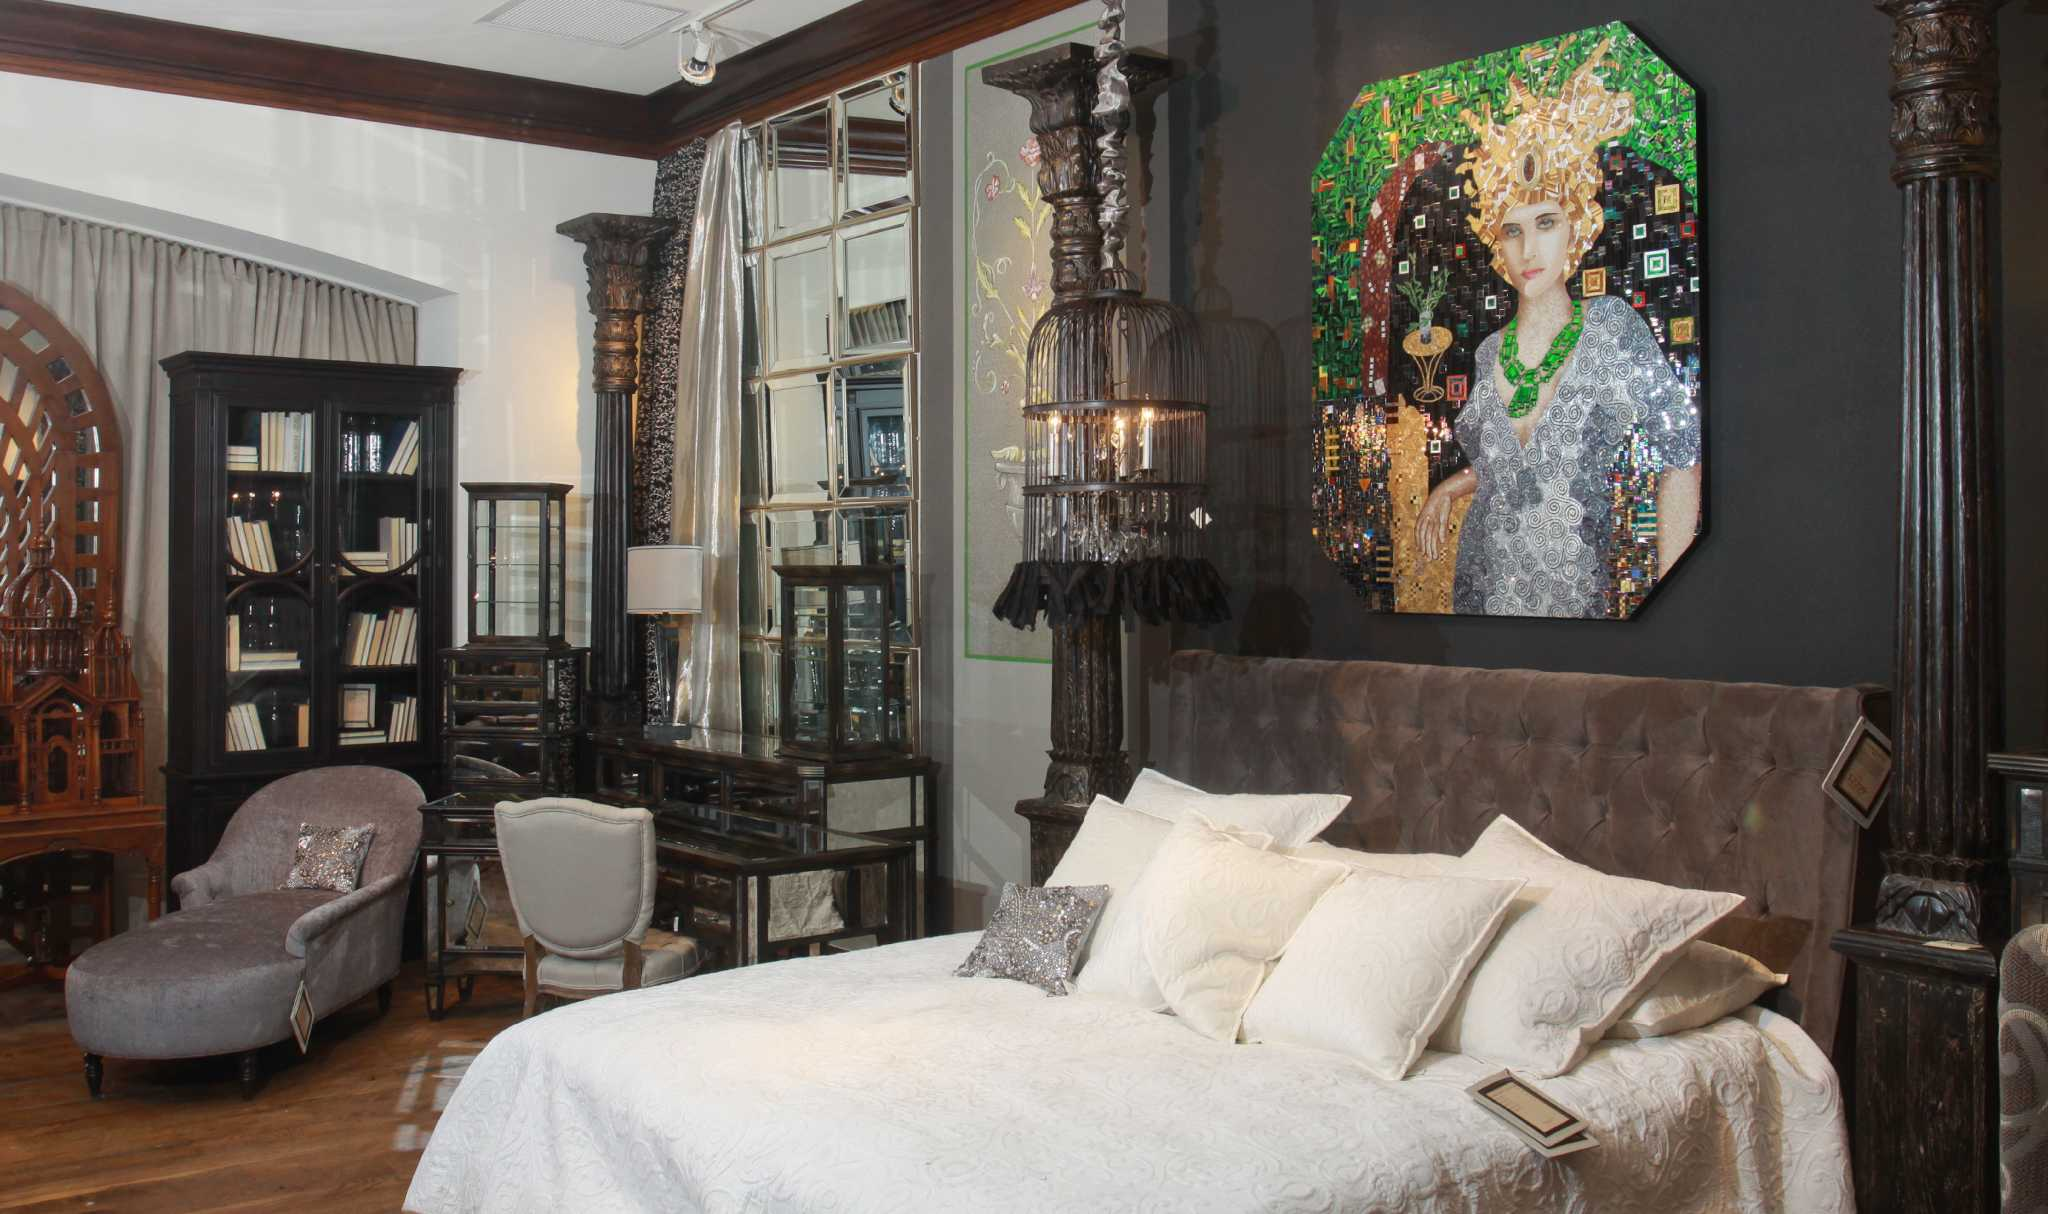 Arhaus Furniture brings an eclectic  global style to Texas   Houston  ChronicleArhaus Furniture brings an eclectic  global style to Texas  . Furniture Consignment Stores Houston Area. Home Design Ideas